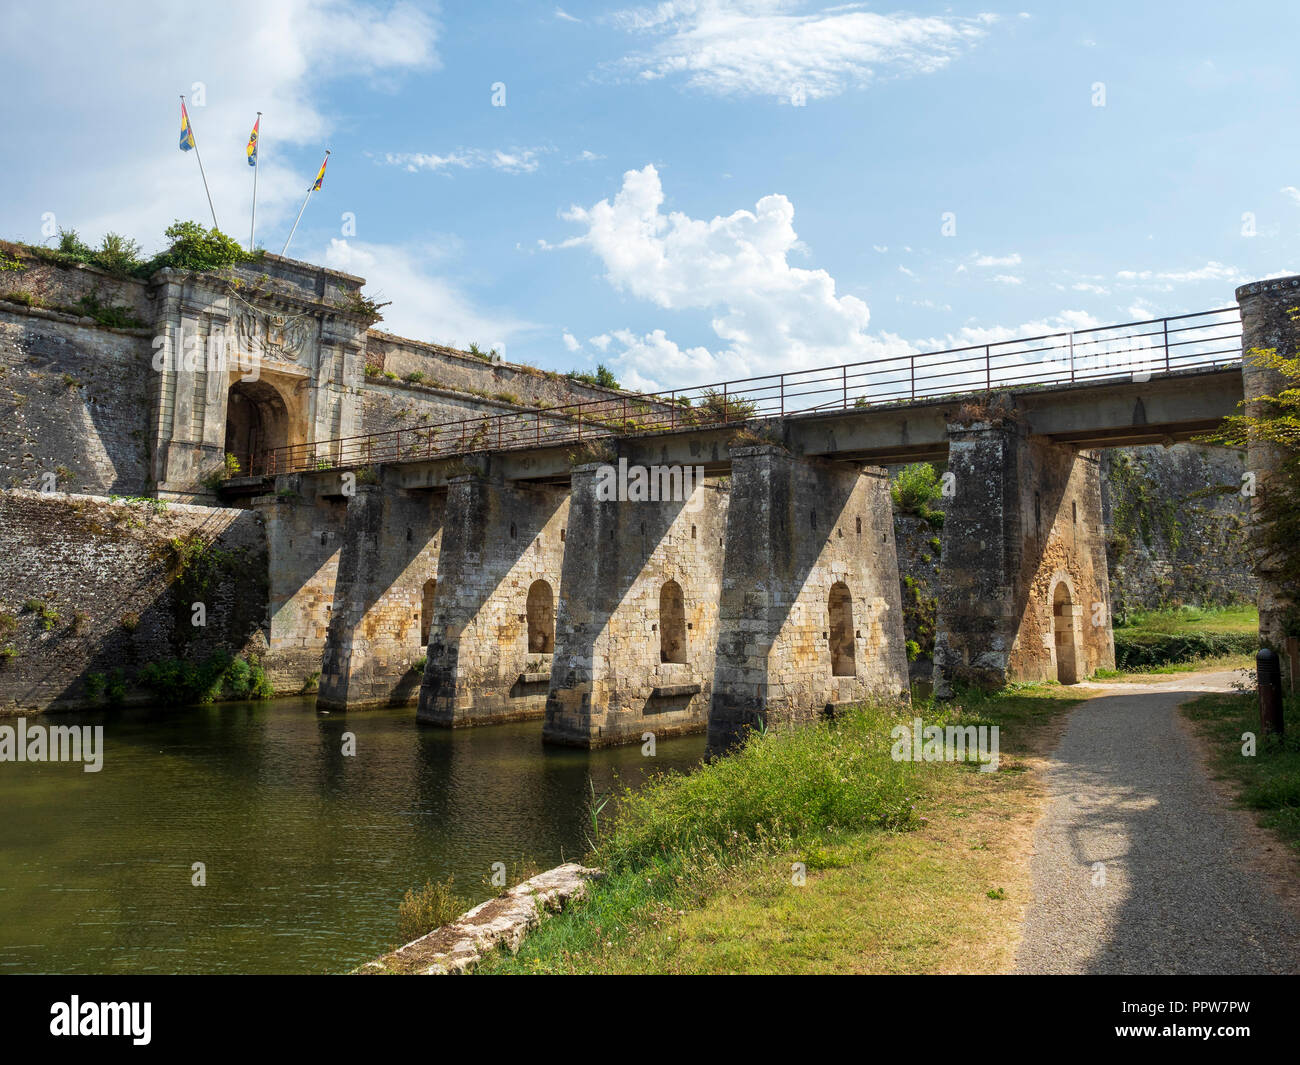 The Royal Gate and bridge stepping over moats, Citadel, Le Chateau d'Oleron, France. - Stock Image